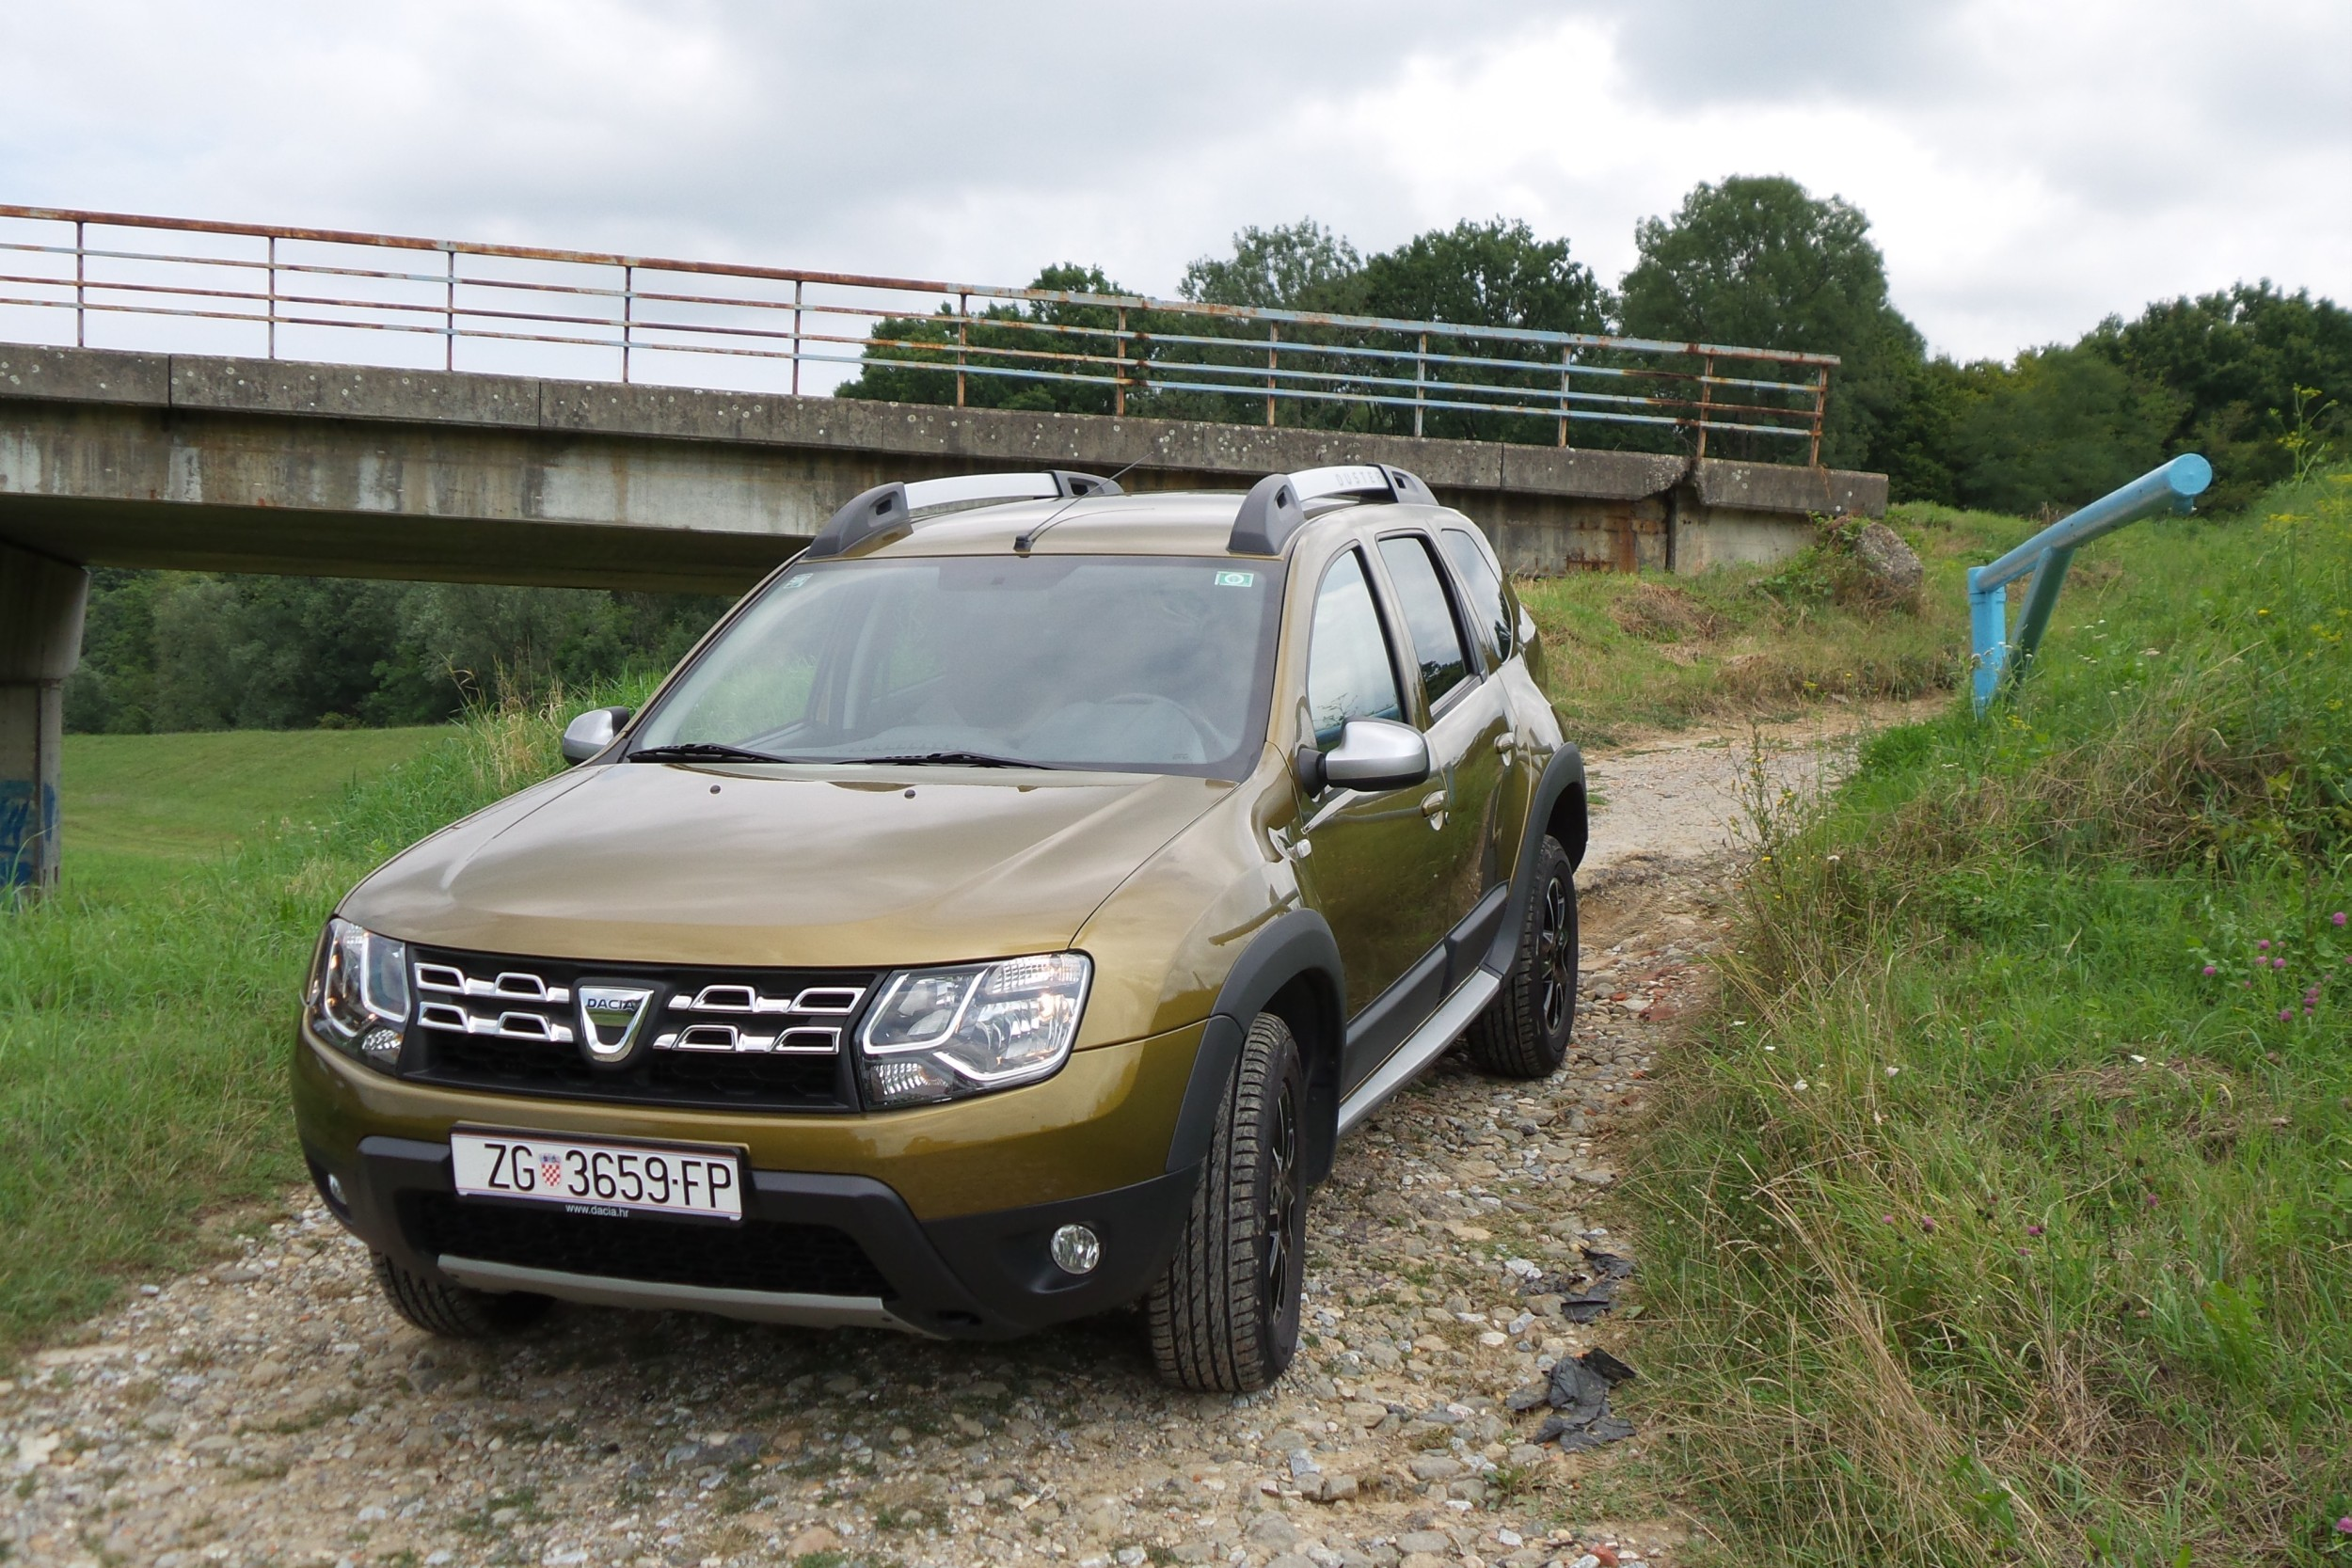 dacia duster 1 5 dci 110 4x4 test testirali smo. Black Bedroom Furniture Sets. Home Design Ideas